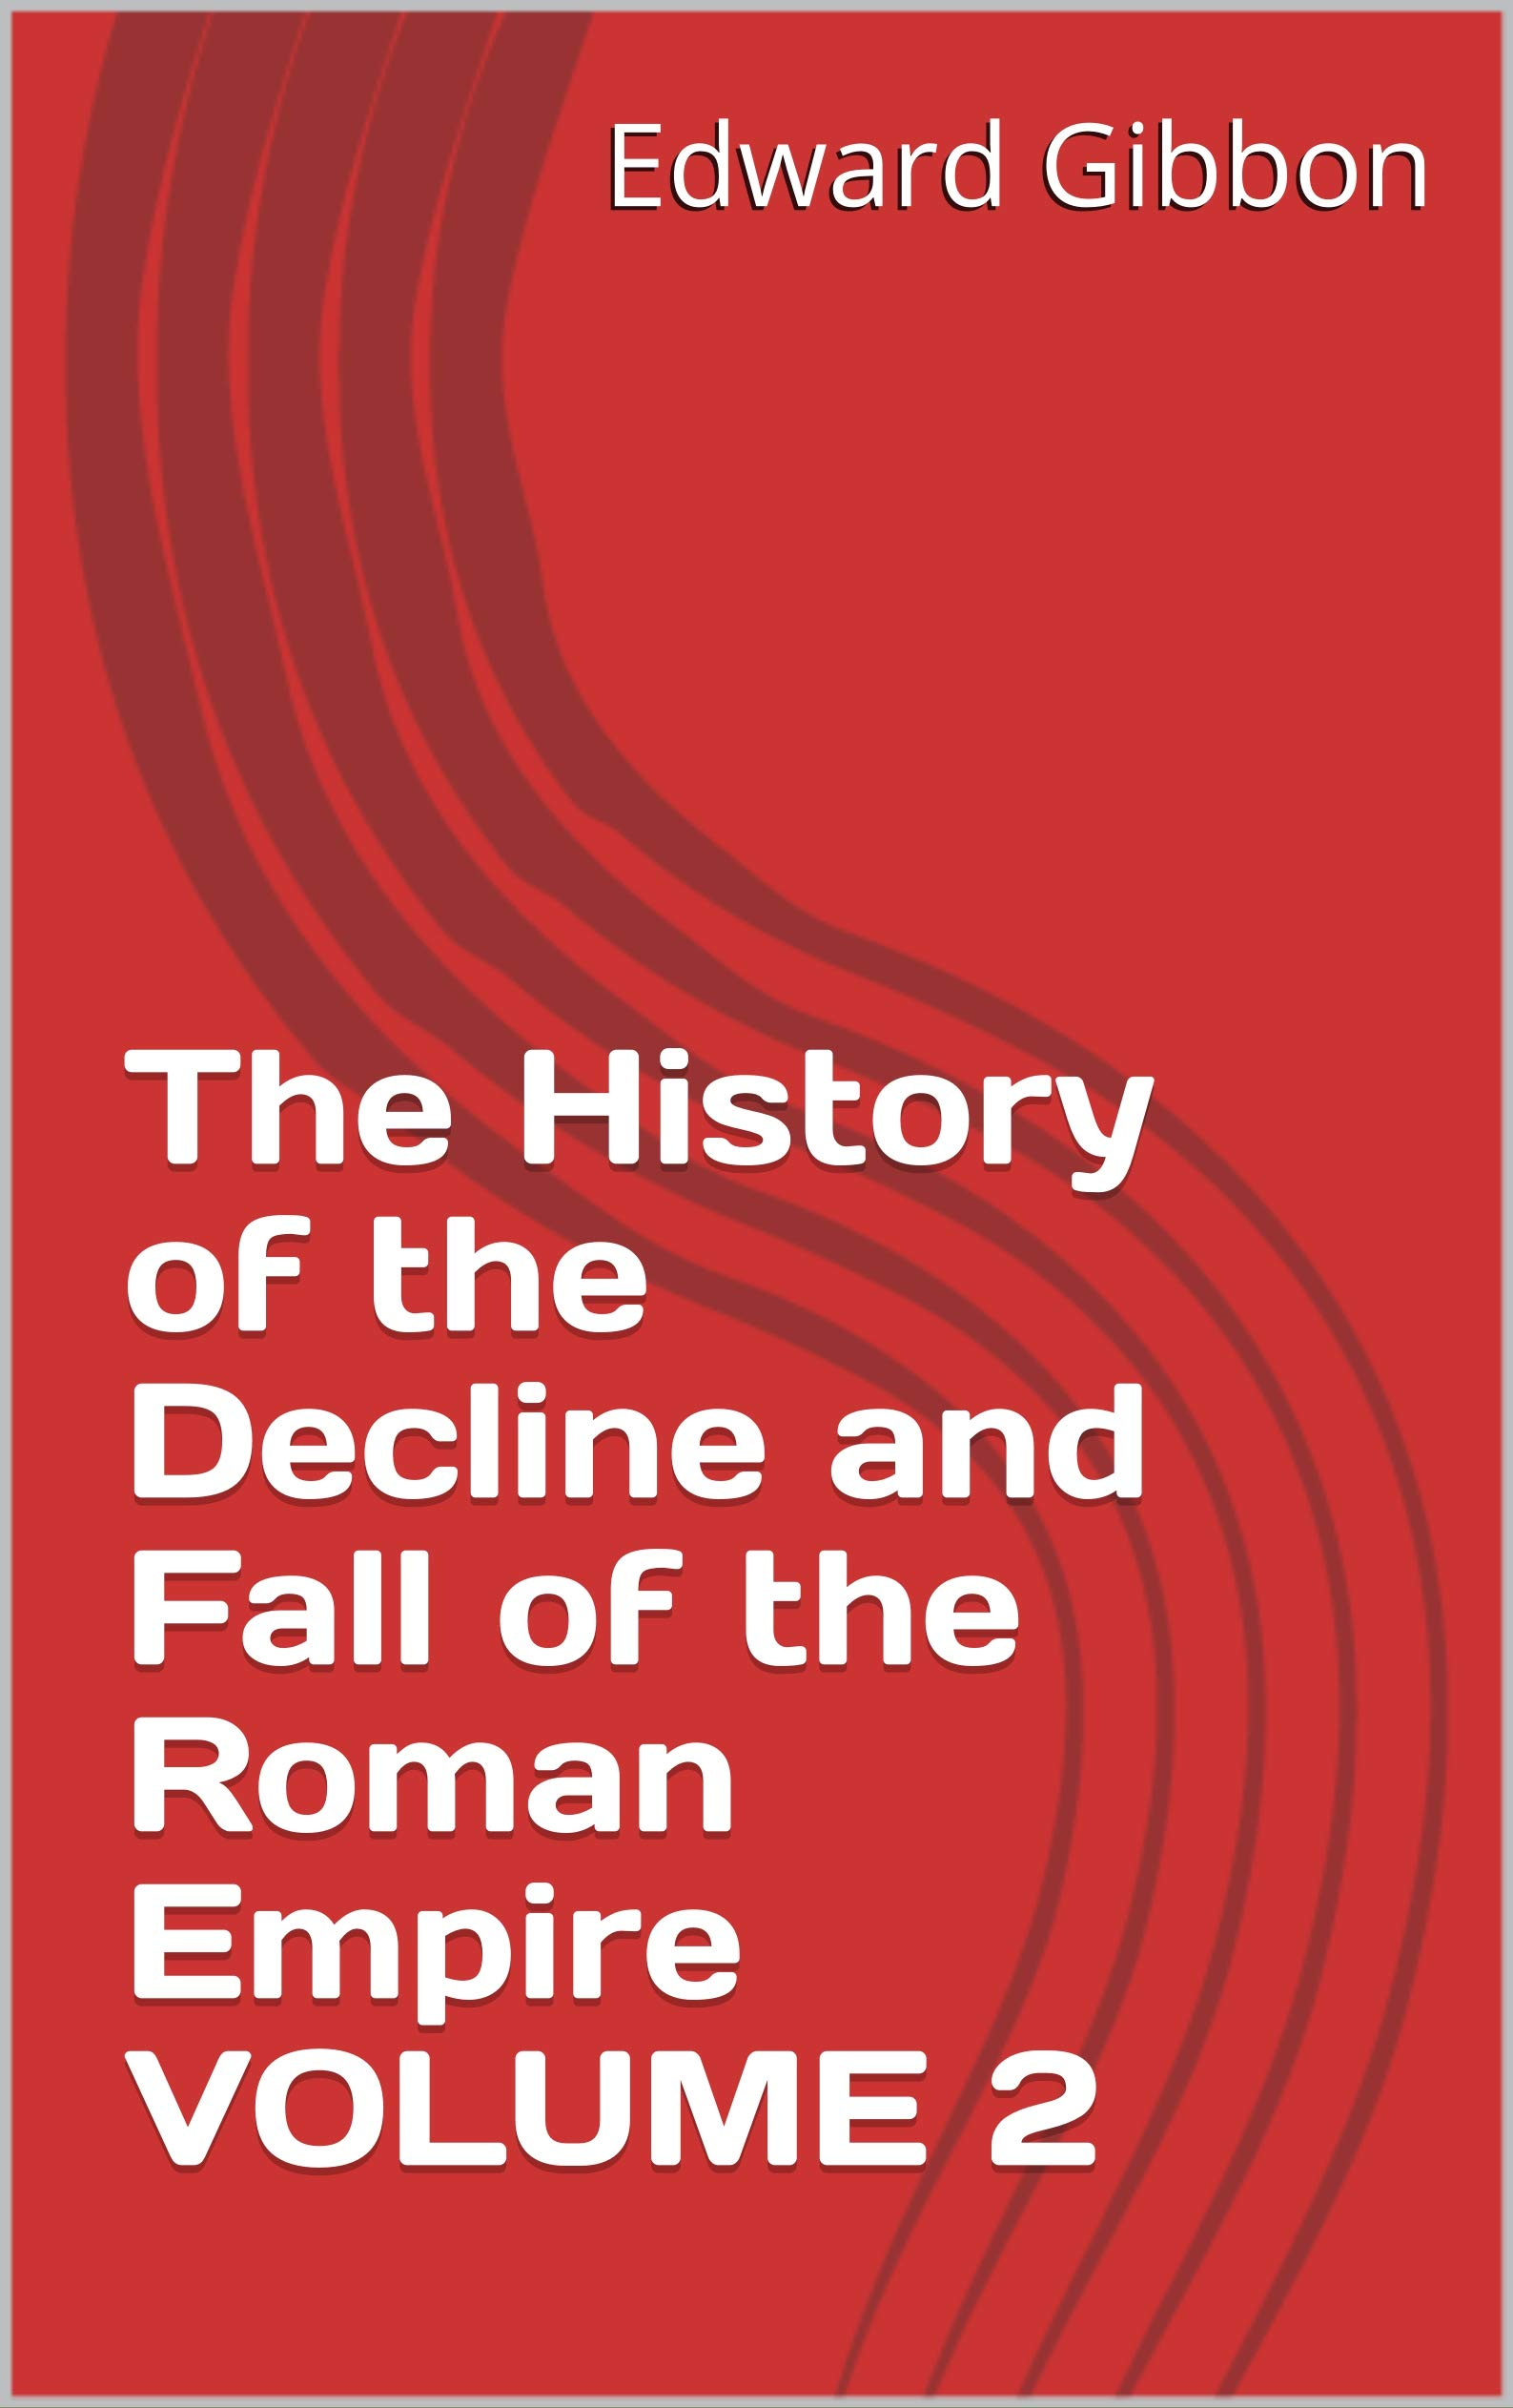 The History of the Decline and Fall of the Roman Empire VOLUME 2